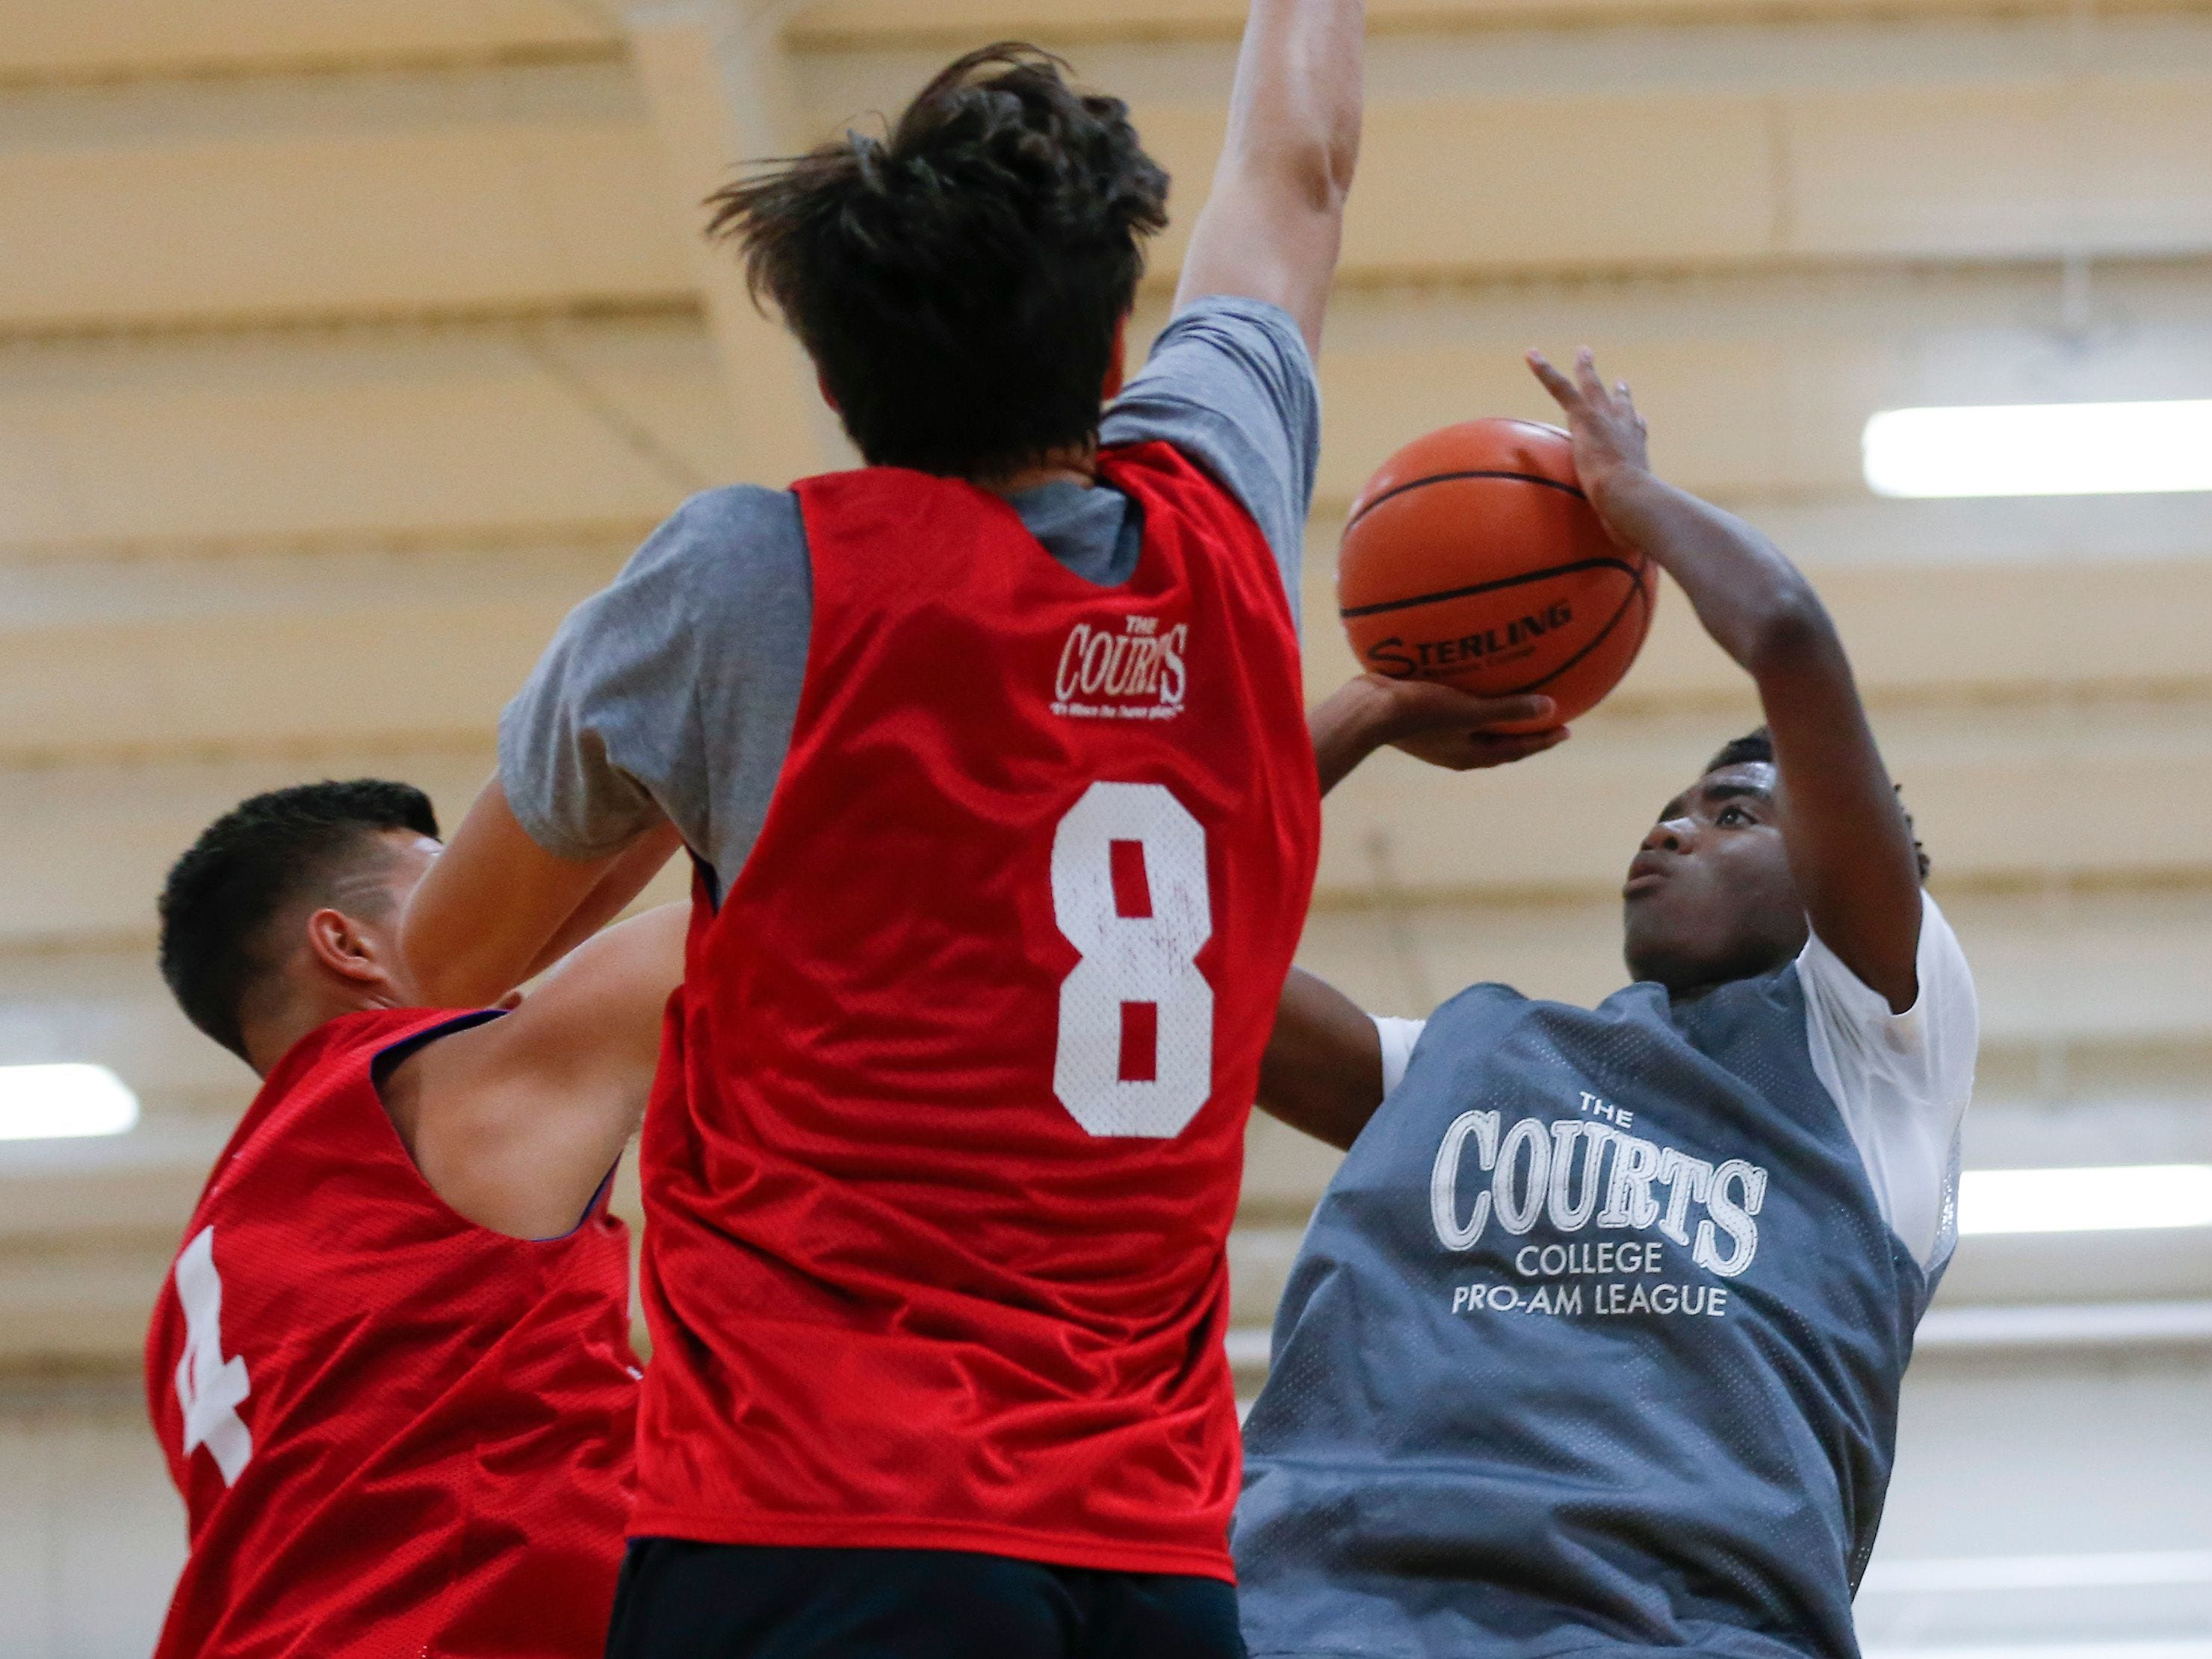 Anton Brookshire shoots a basket during a game at the 19th Annual Men's & Women's College Pro am League at The Courts on Wednesday, June 20, 2018.